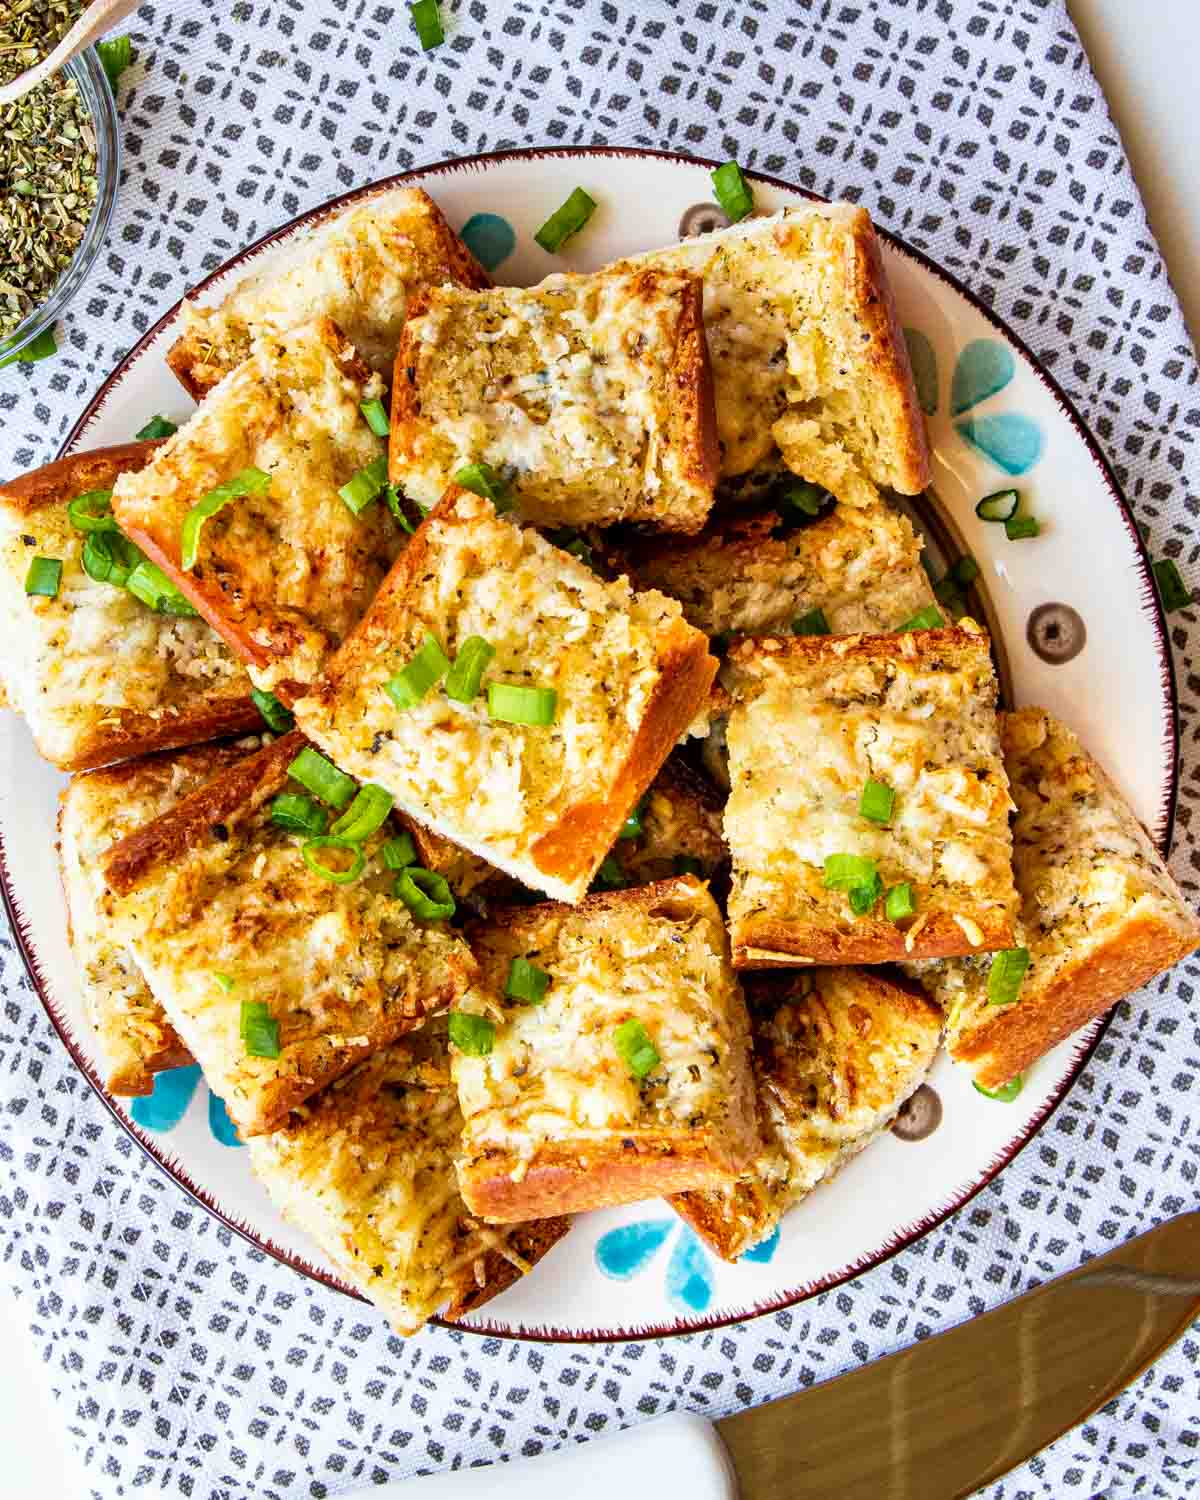 garlic bread cut up in slices on a plate garnished with green onions.